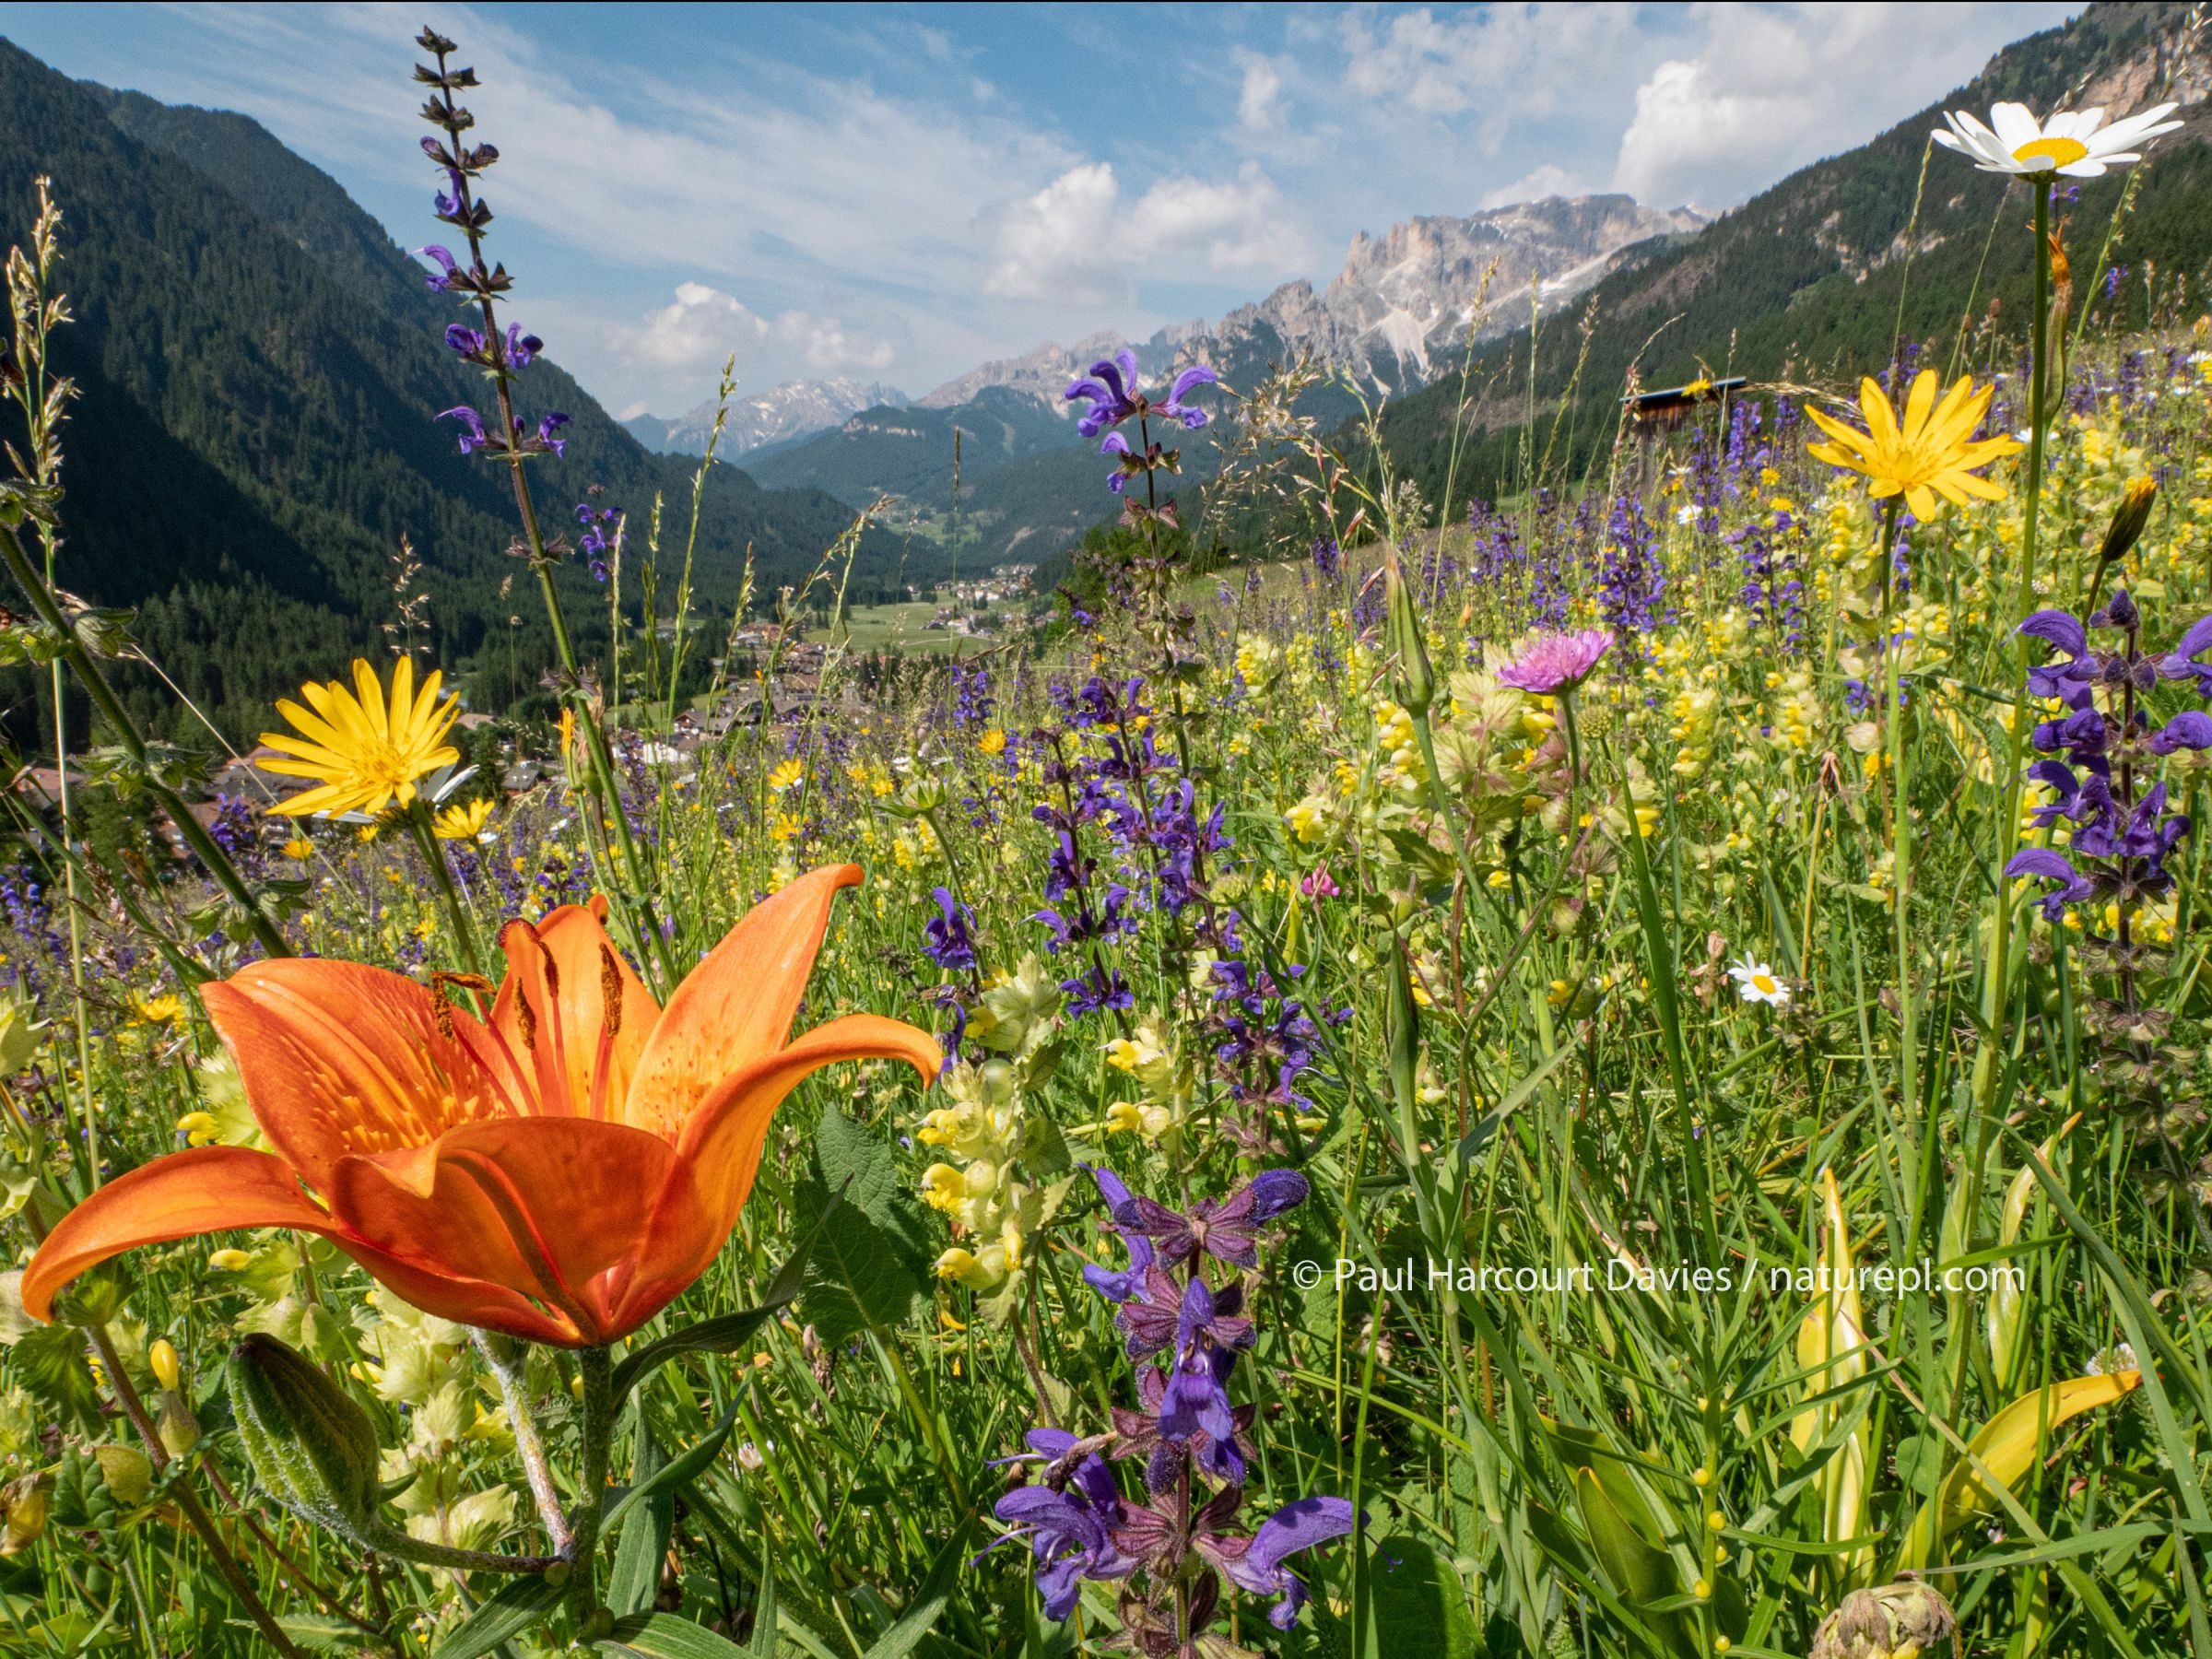 Species rich alpine meadow with Orange lily (Lilium bulbiferum), Meadow clary (Salvia pratensis) and Yellow rattle (Rhinathus sp). View towards Campitello di Fassa and mountains, Fassa Valley, Dolomites, Italy. June 2019.